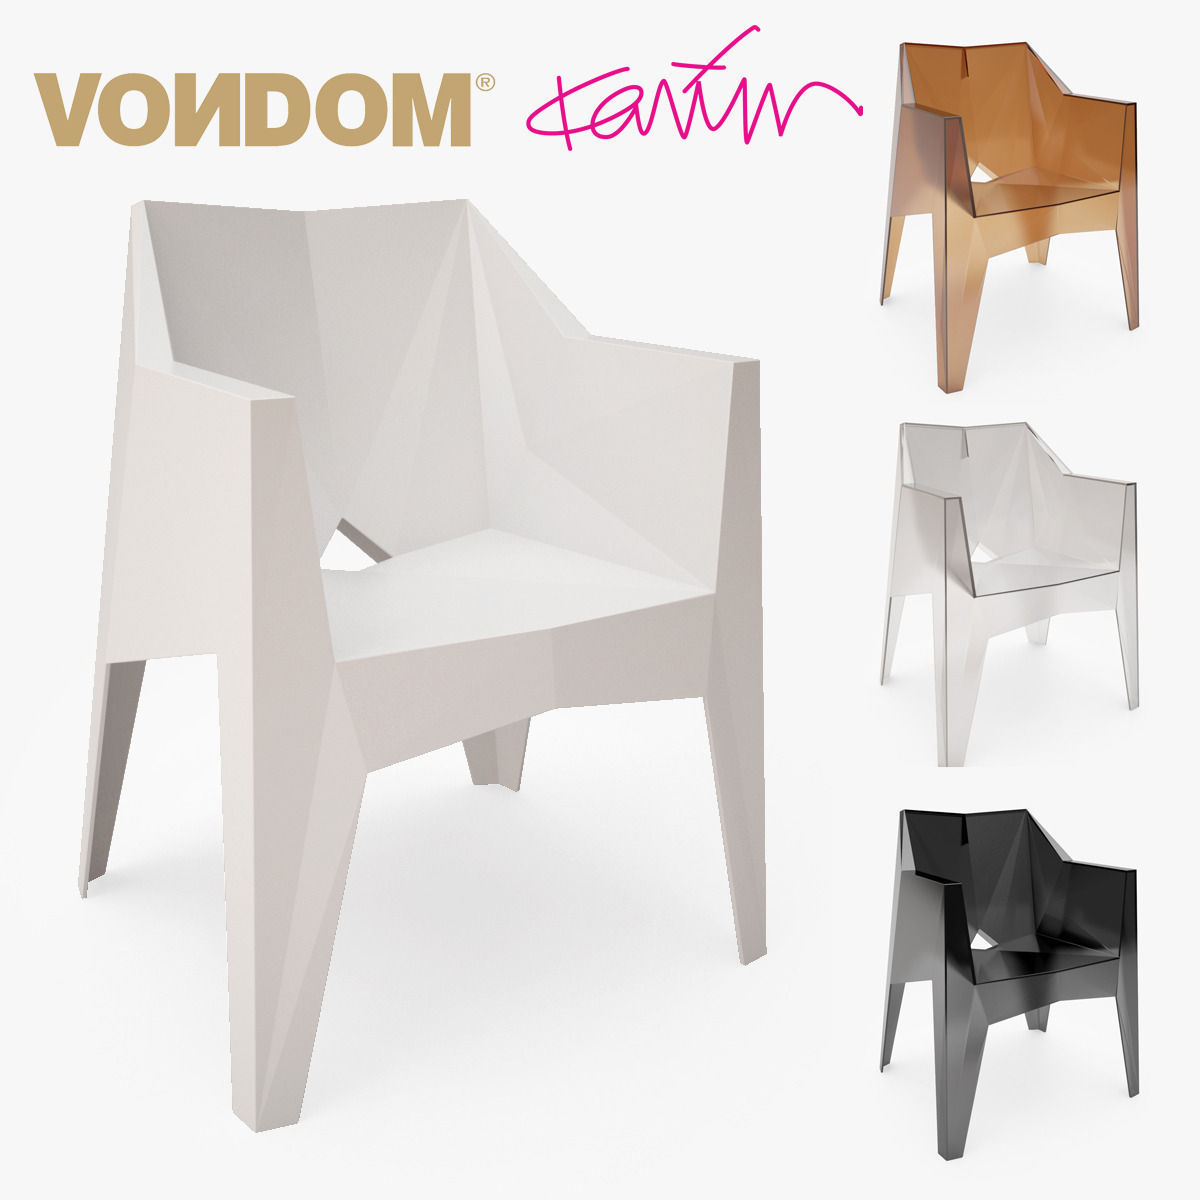 Lounge chair outdoor wood patio deck 3d model obj mtl cgtrader com - 3d Lounge Chair Outdoor Wood Patio Deck 8 95 Obj Dxf Mtl 3d Model Armchair 4 00 Blend Dae Vondom Voxel Silla Chair 3d Model